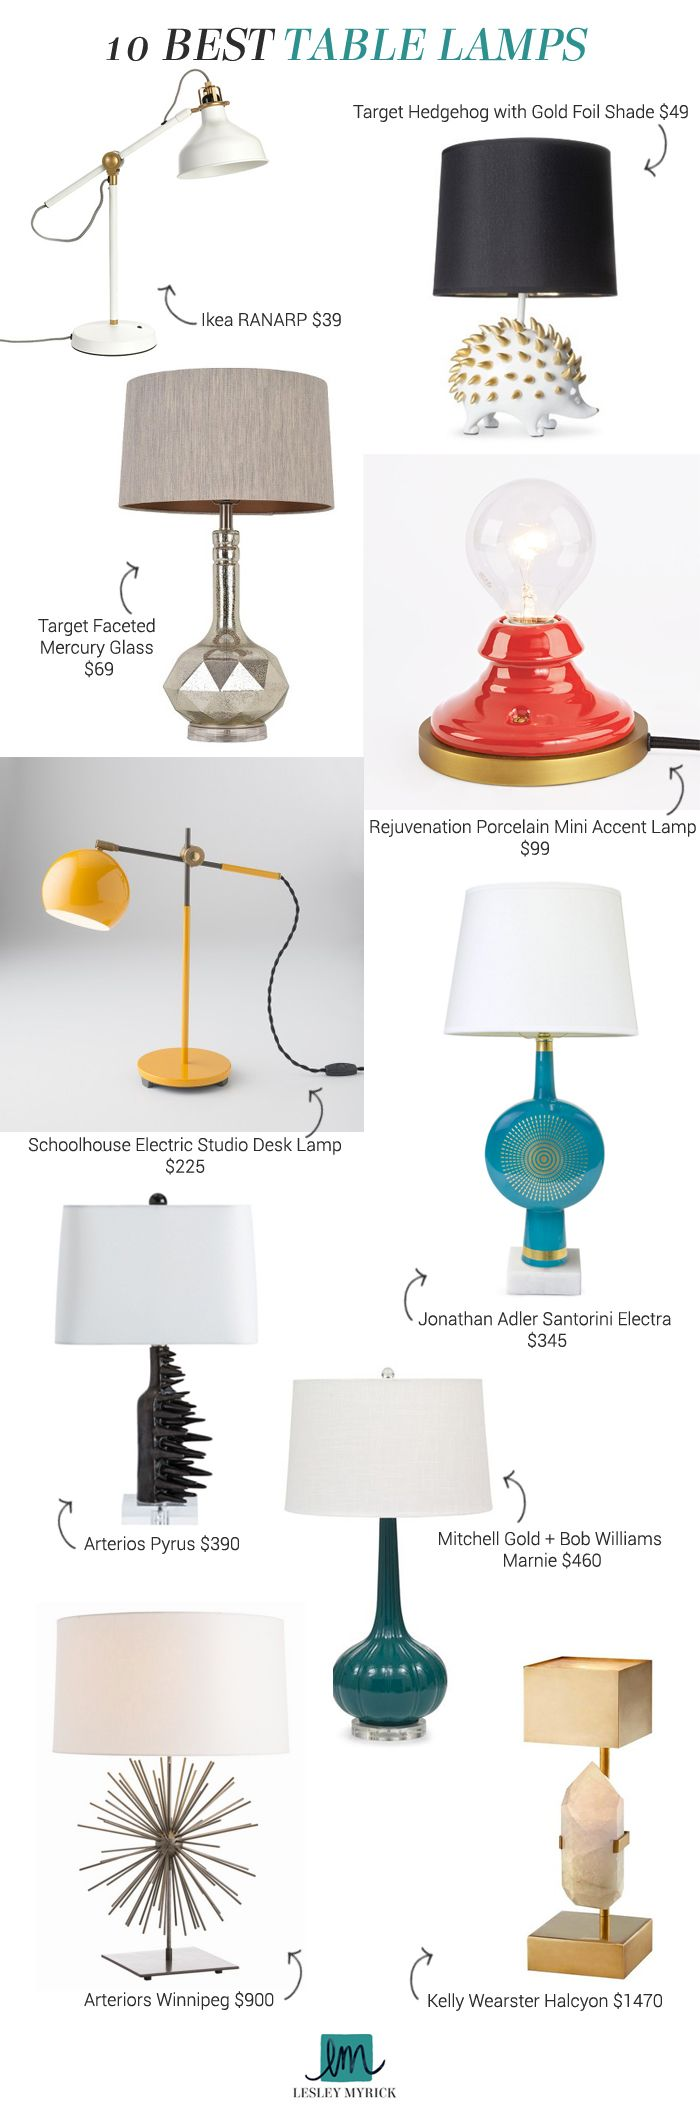 23 best Table Lamps images on Pinterest | Table lamps, Apples and ...